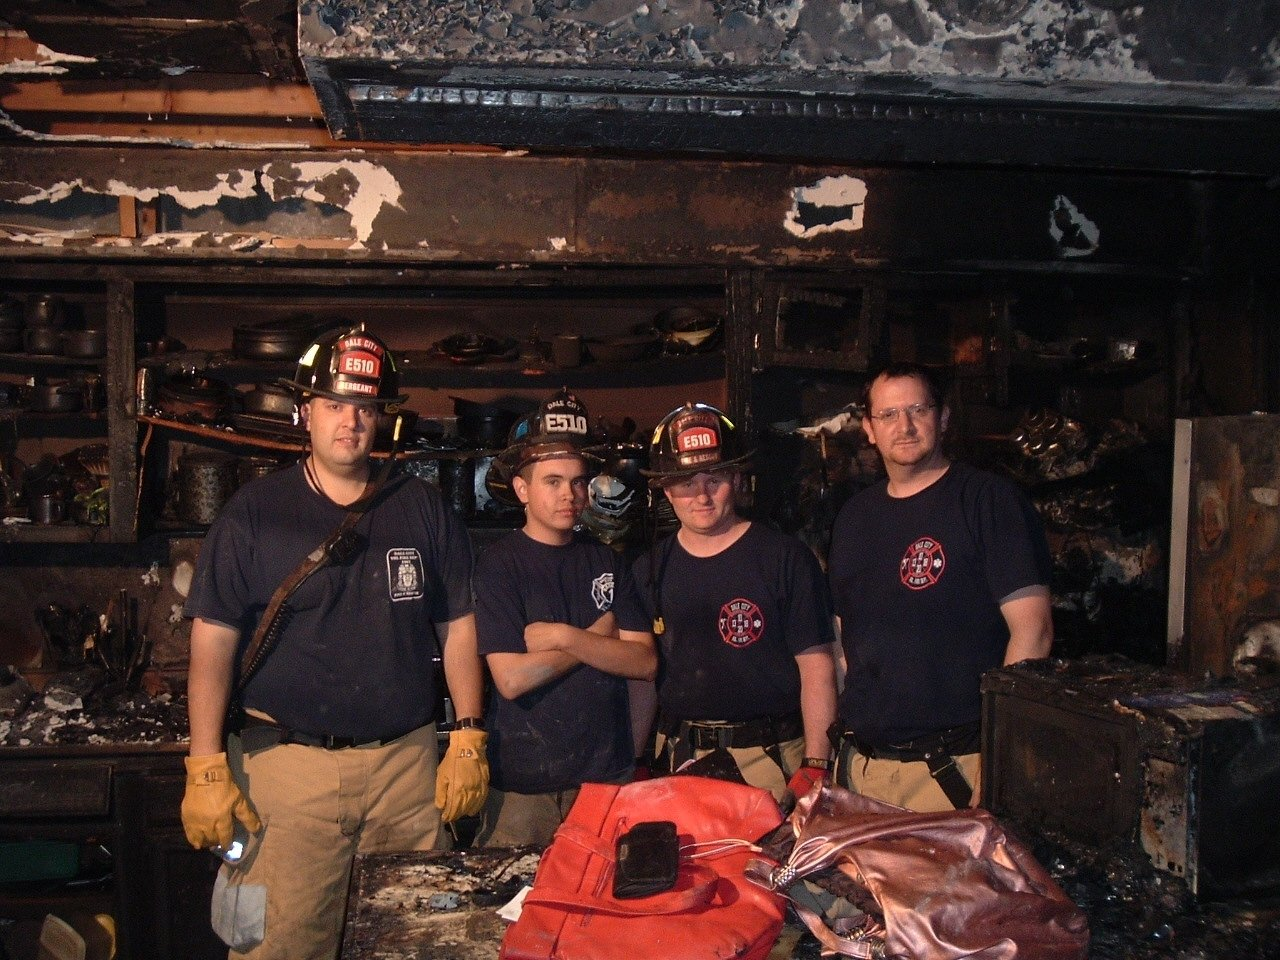 DCVFD Who We Are